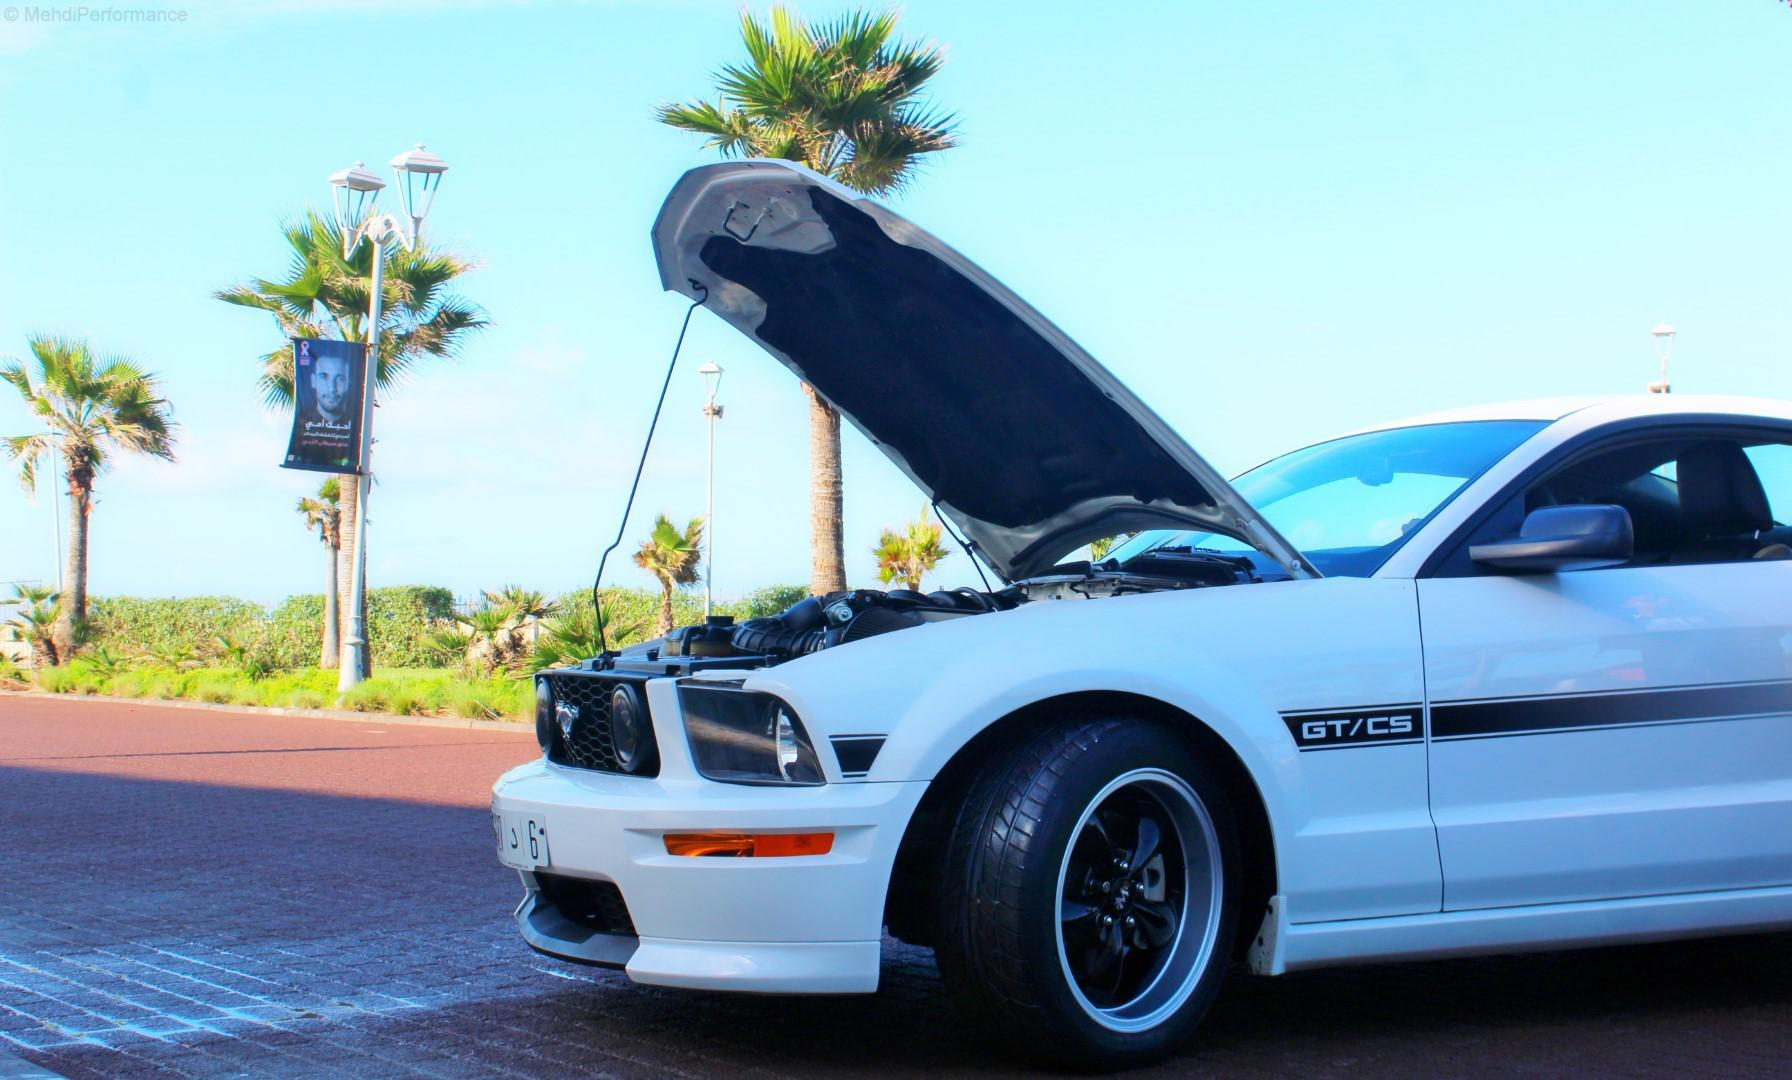 serie-speciale-au-maroc-ford-mustang-gt-v8-4-6l-california-special-manuelle-458-12.jpg